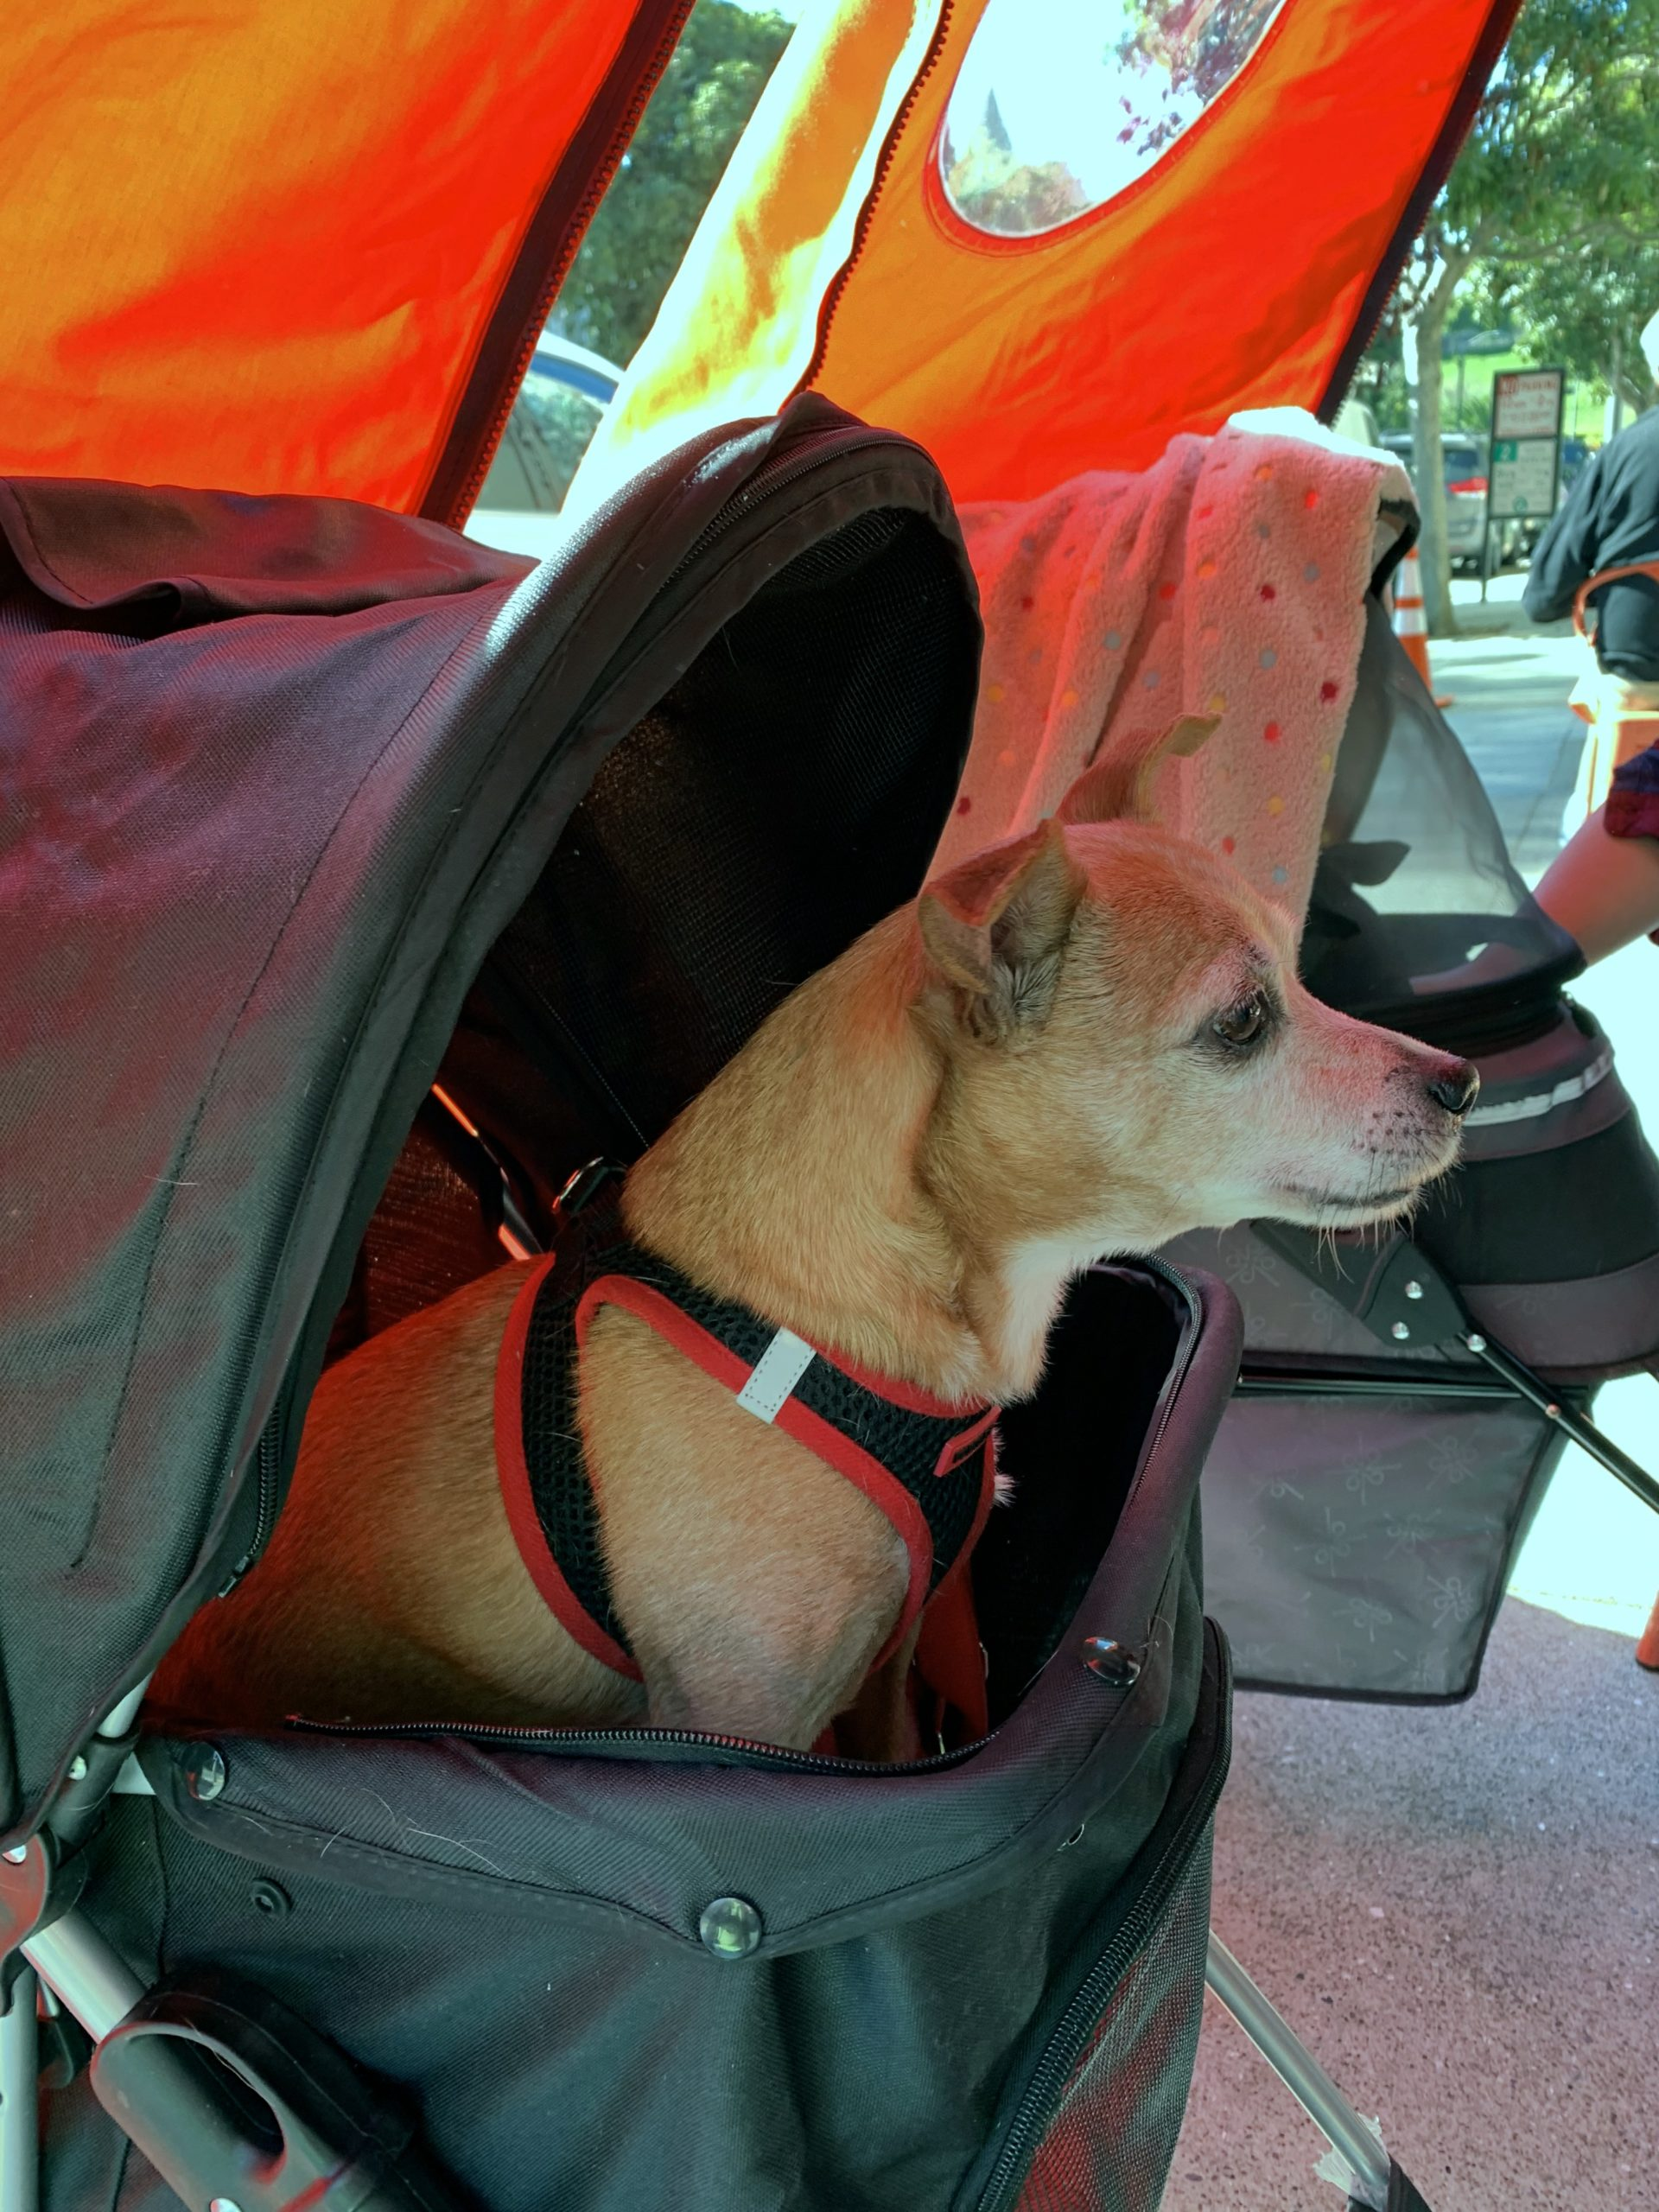 Chihuahua Dachshund Mix In A Baby Carriage